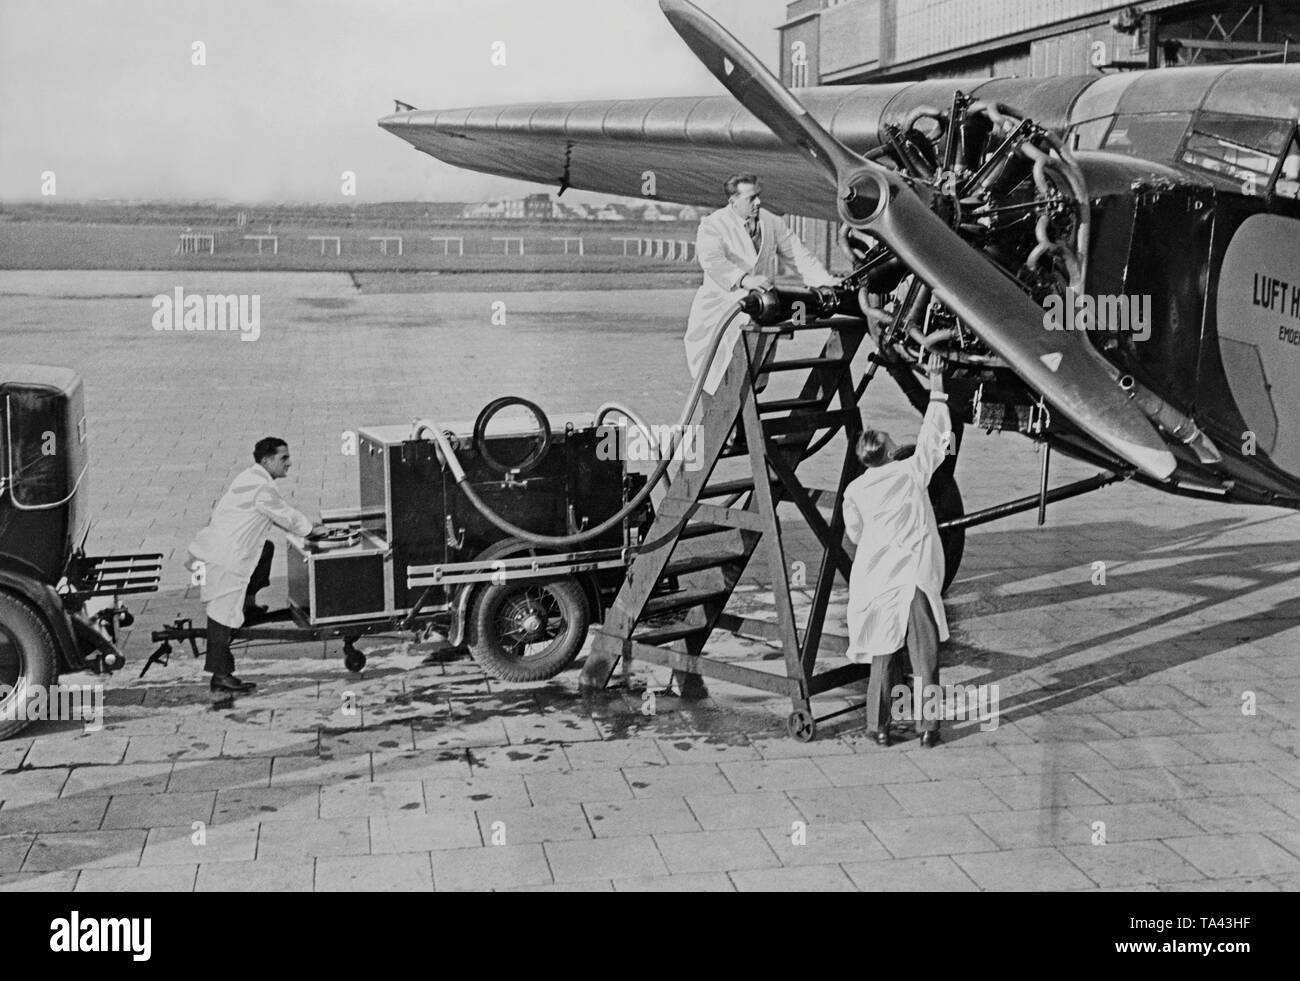 Mechanics of the Lufthansa check a radial engine of a Focke Wulf A17 'Moewe' ('Seagull'). The airplane bears the given name of 'Emden'. - Stock Image